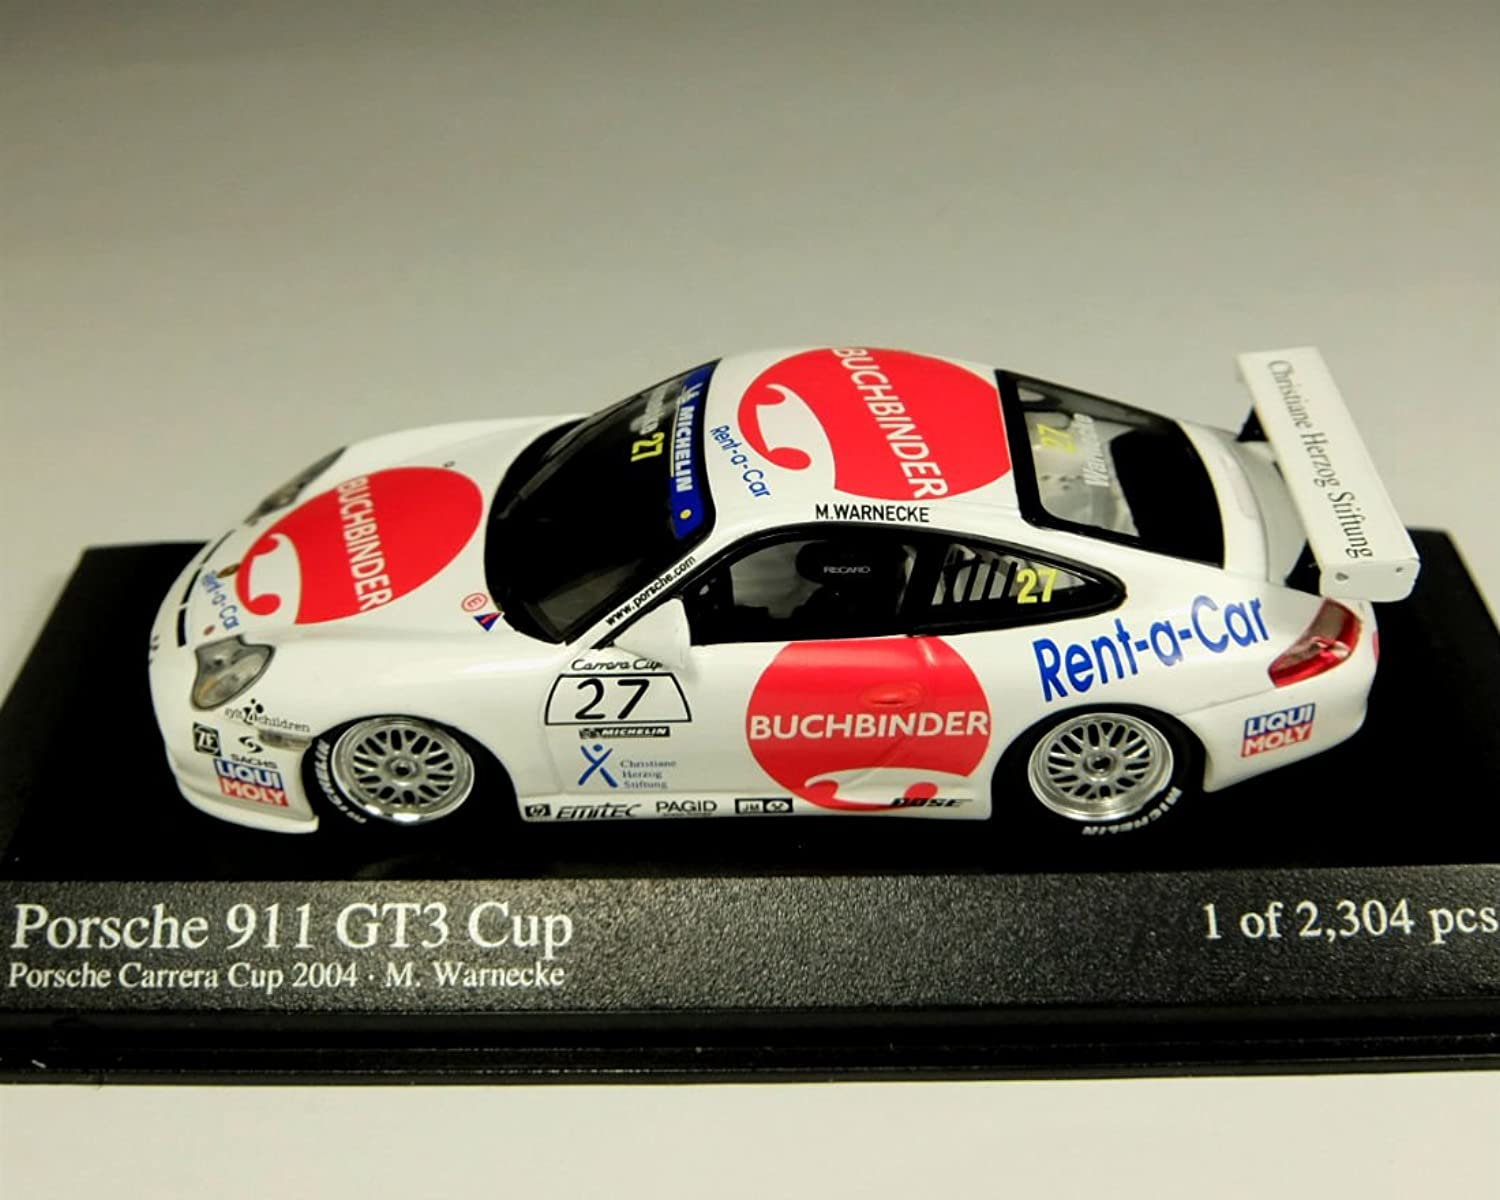 MINICHAMPS PM400046227 PORSCHE 911 GT 3 N.27 2004 1 43 MODELLINO DIE CAST MODEL